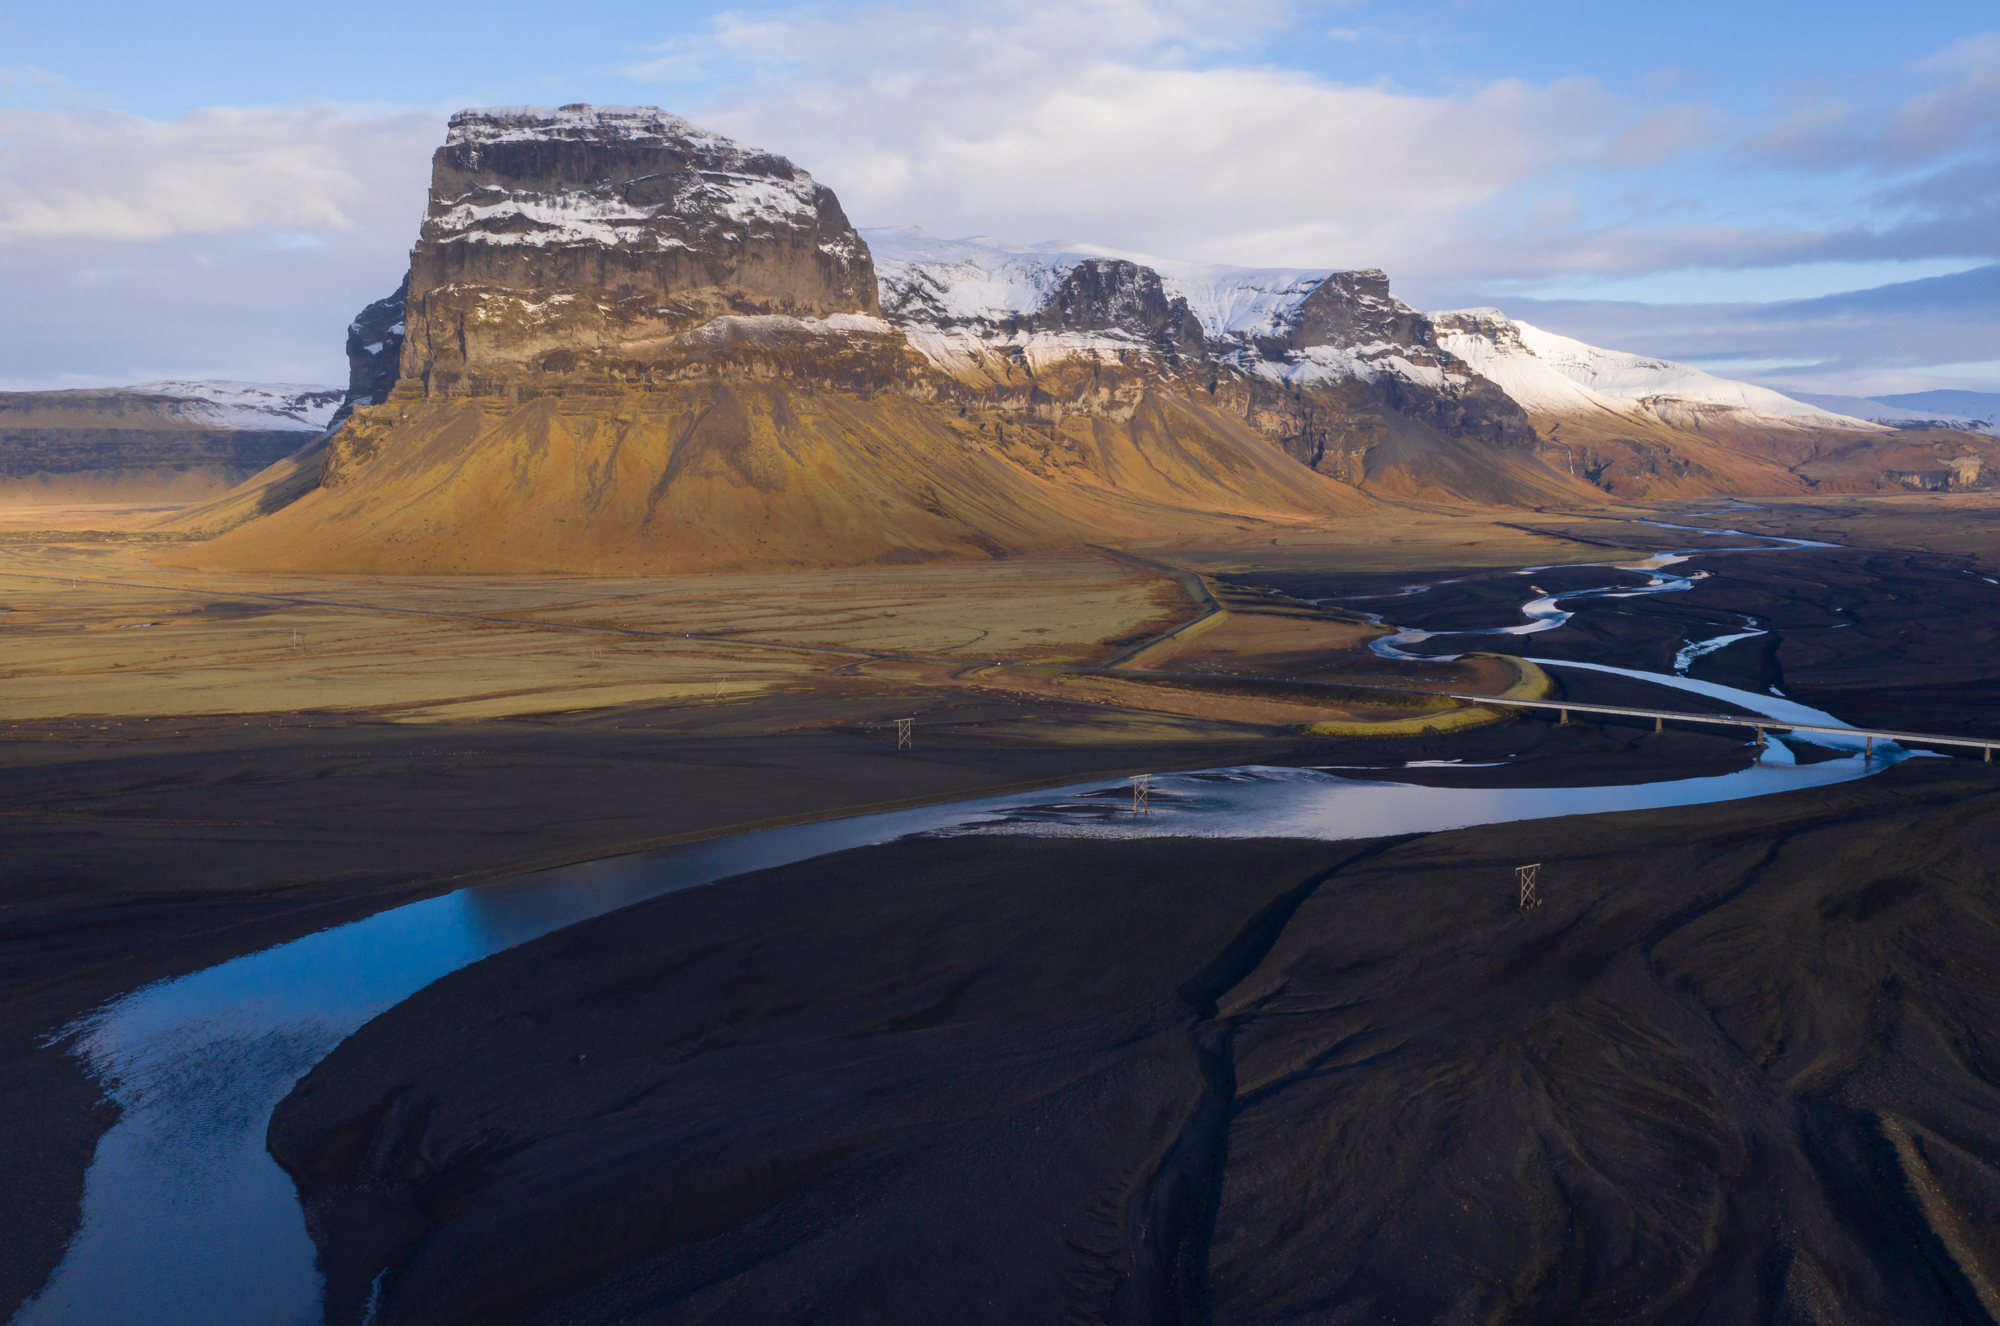 A mellow glacial stream glows blue and white from the reflected sky as it creates elegant s-curves along the dramatic bounding edge of the Skeiðarársandur